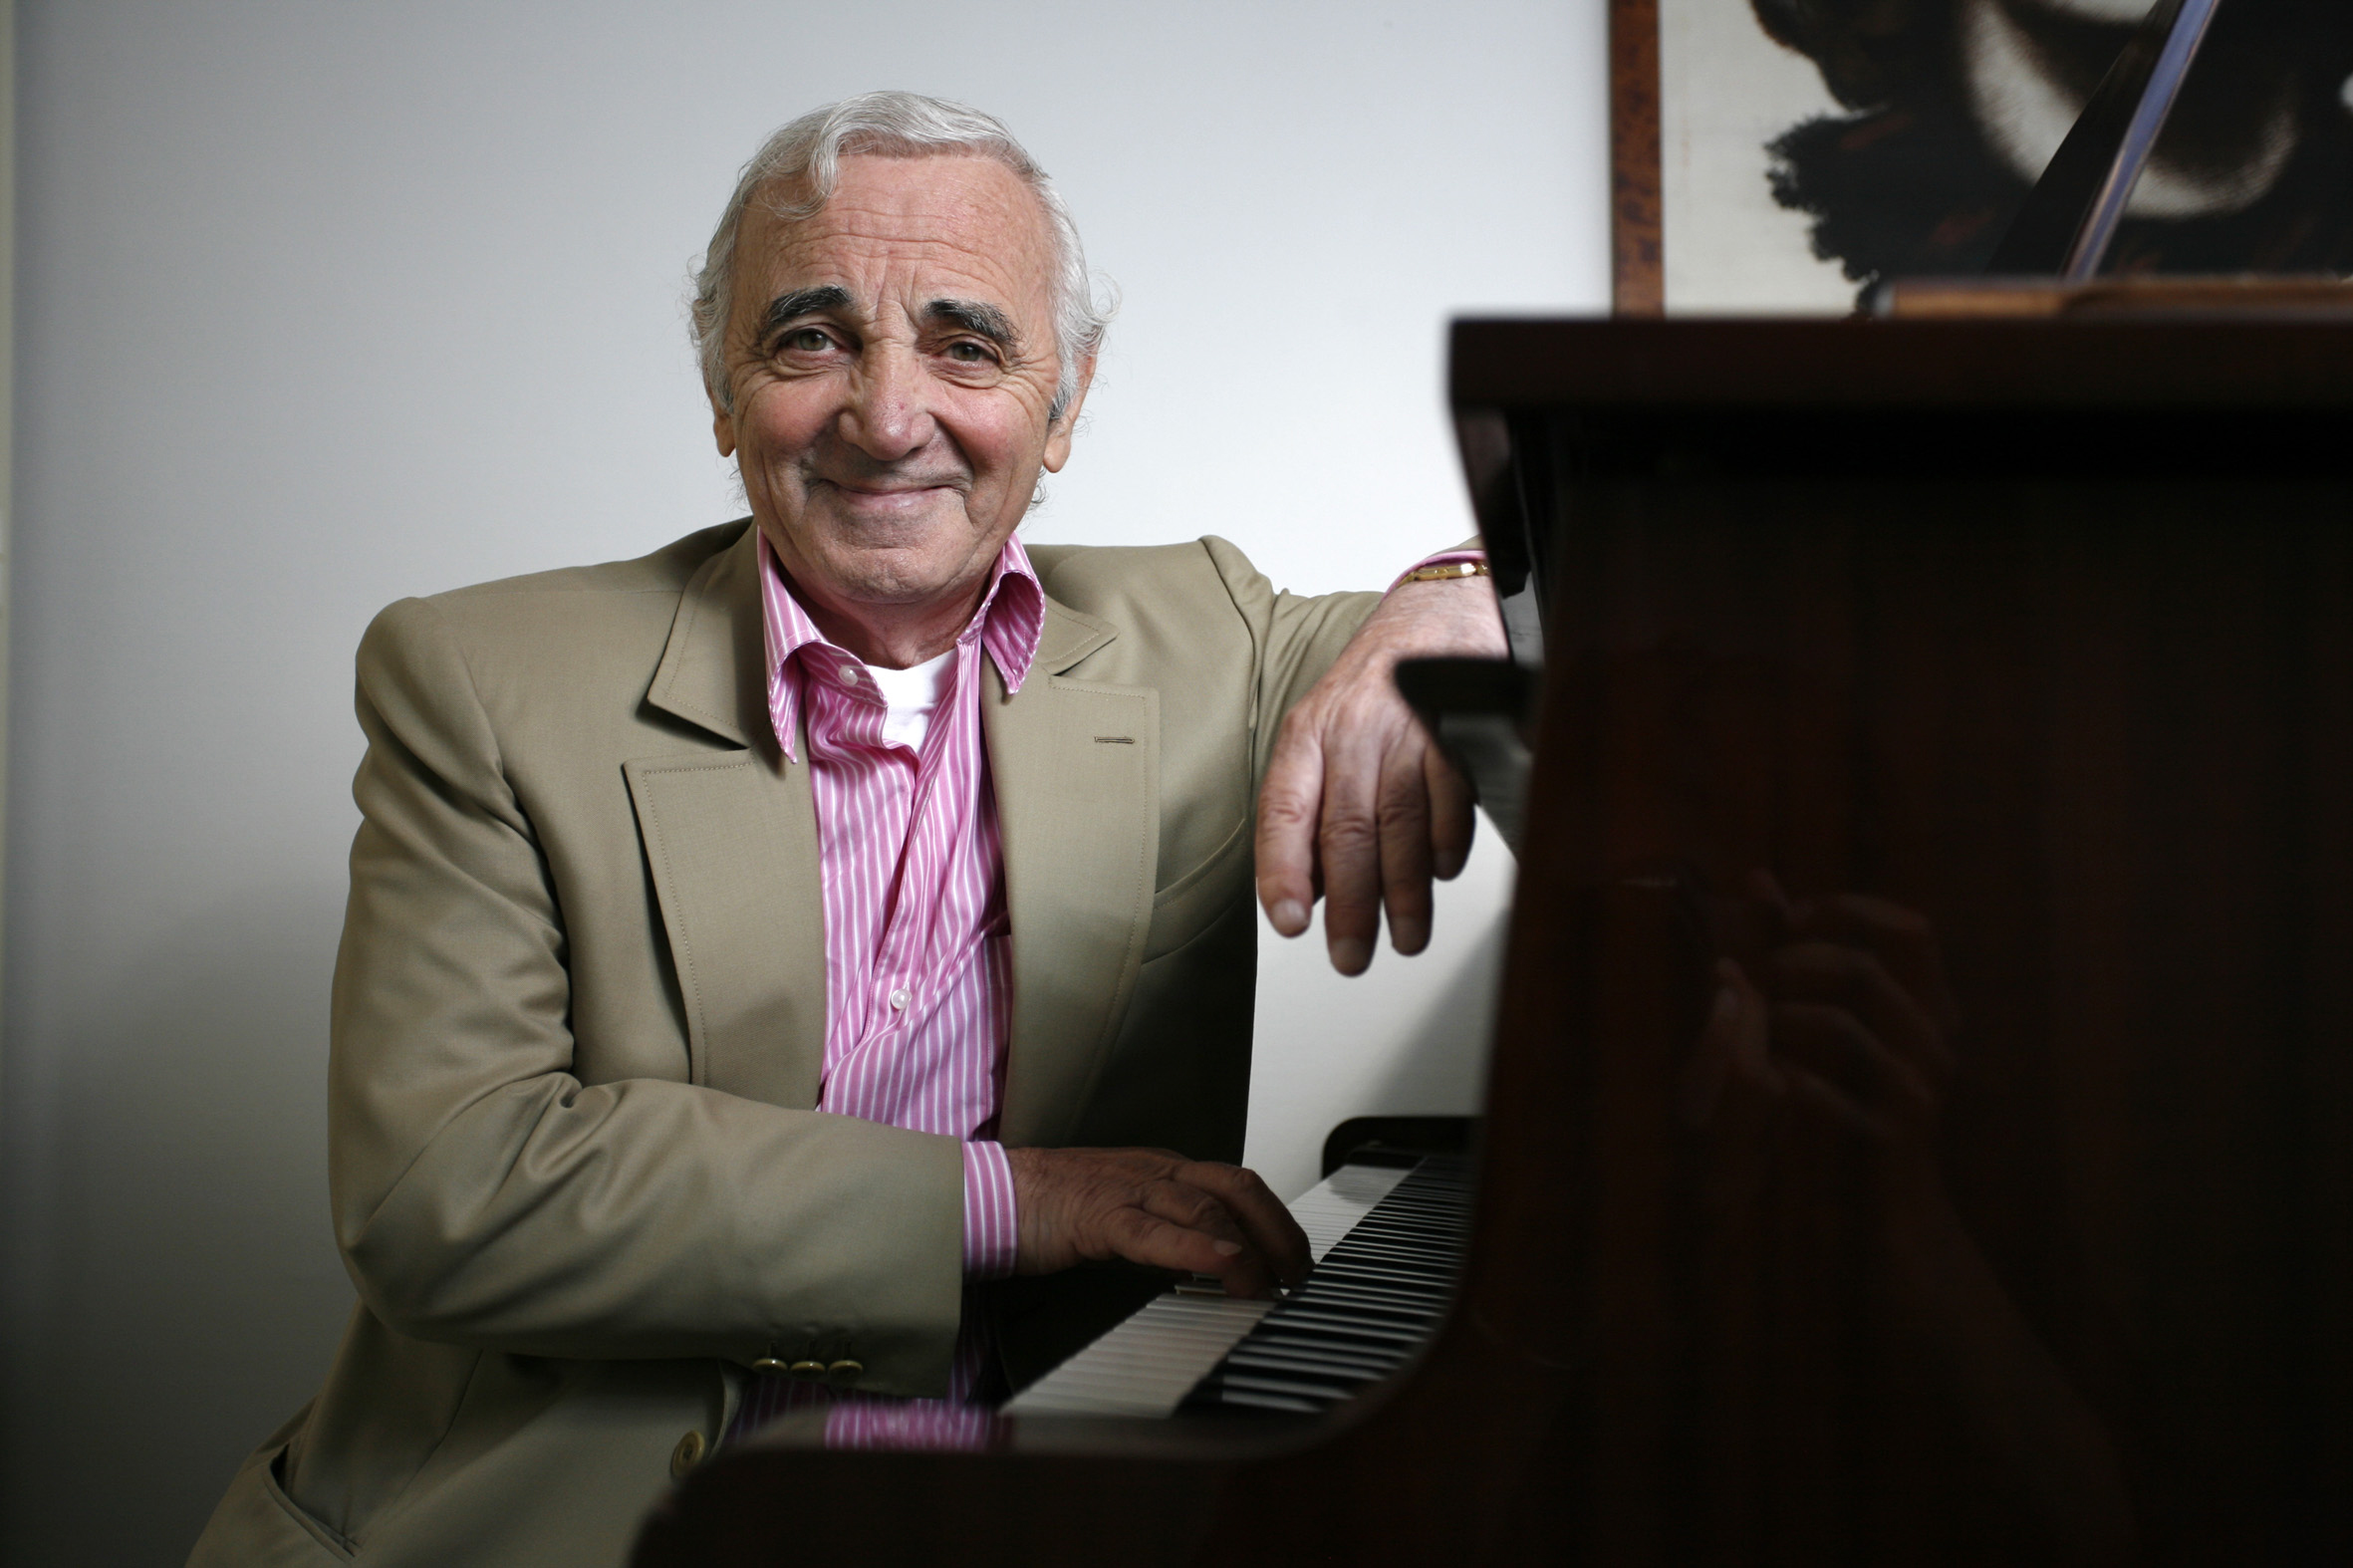 Charles Aznavour, enduring French singer with global reach